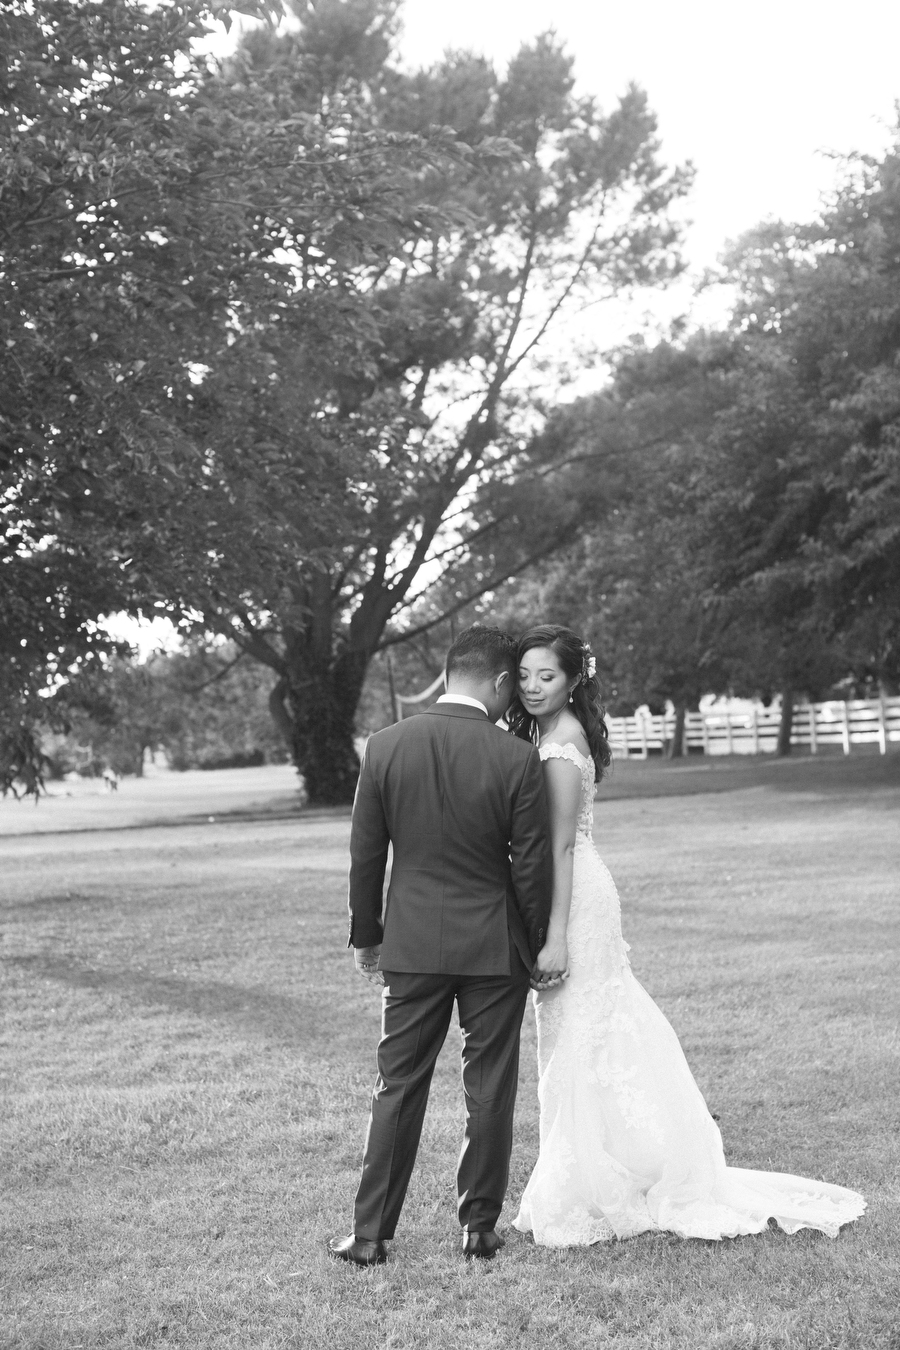 MARIACORONAPHOTOGRAPHY_WEDDING_100.JPG